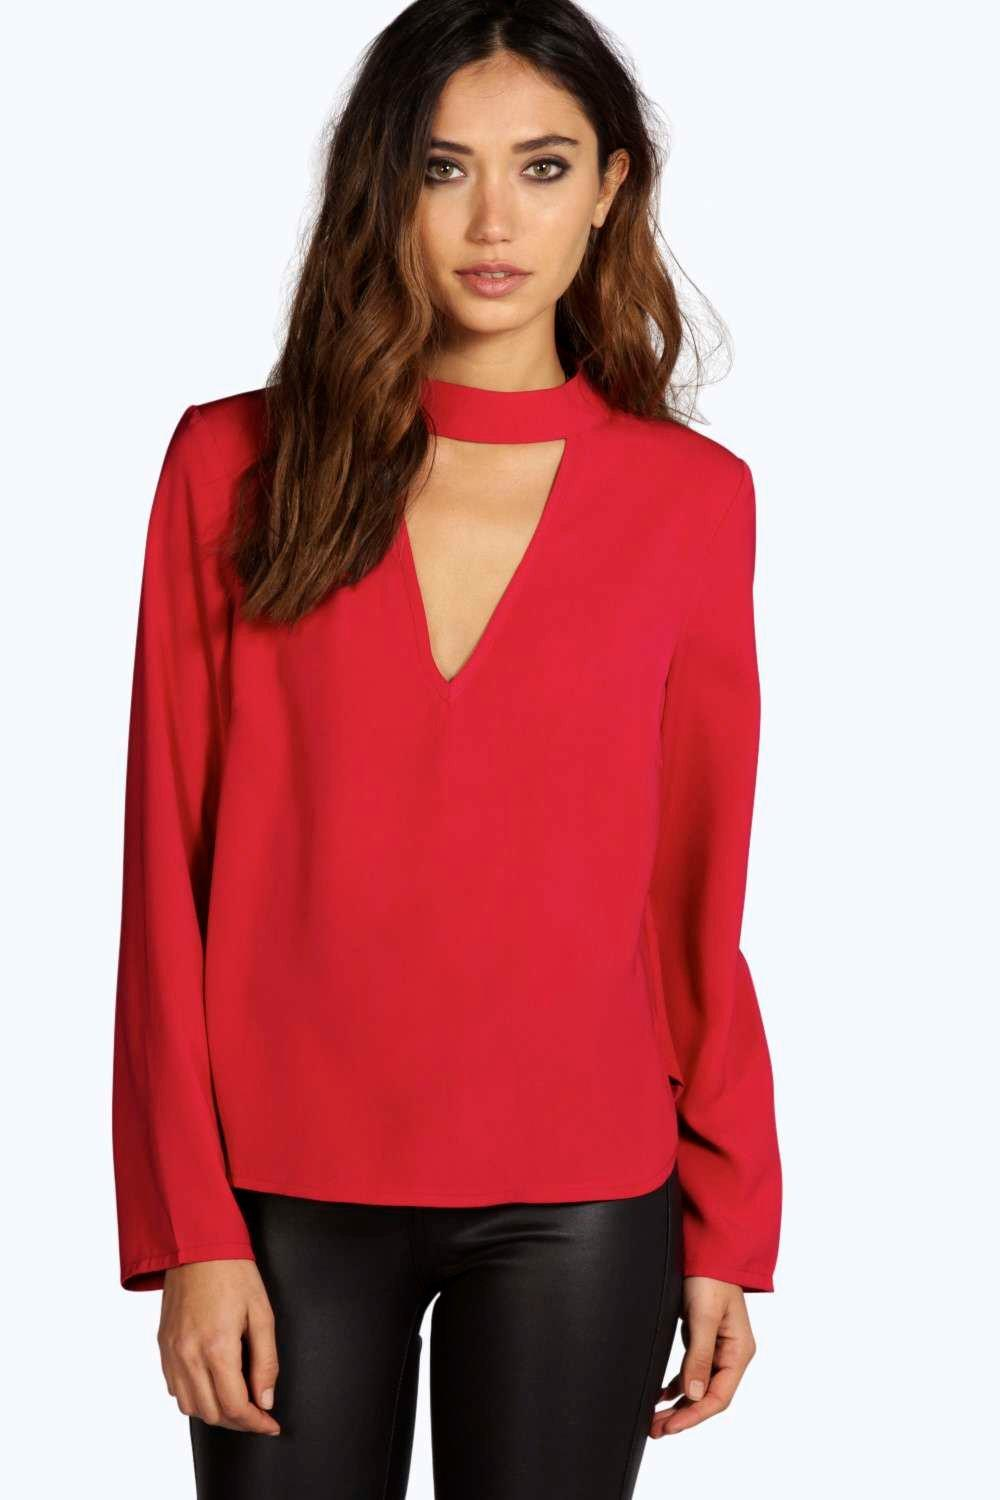 Shop Target for Red Tops you will love at great low prices. Spend $35+ or use your REDcard & get free 2-day shipping on most items or same-day pick-up in store.